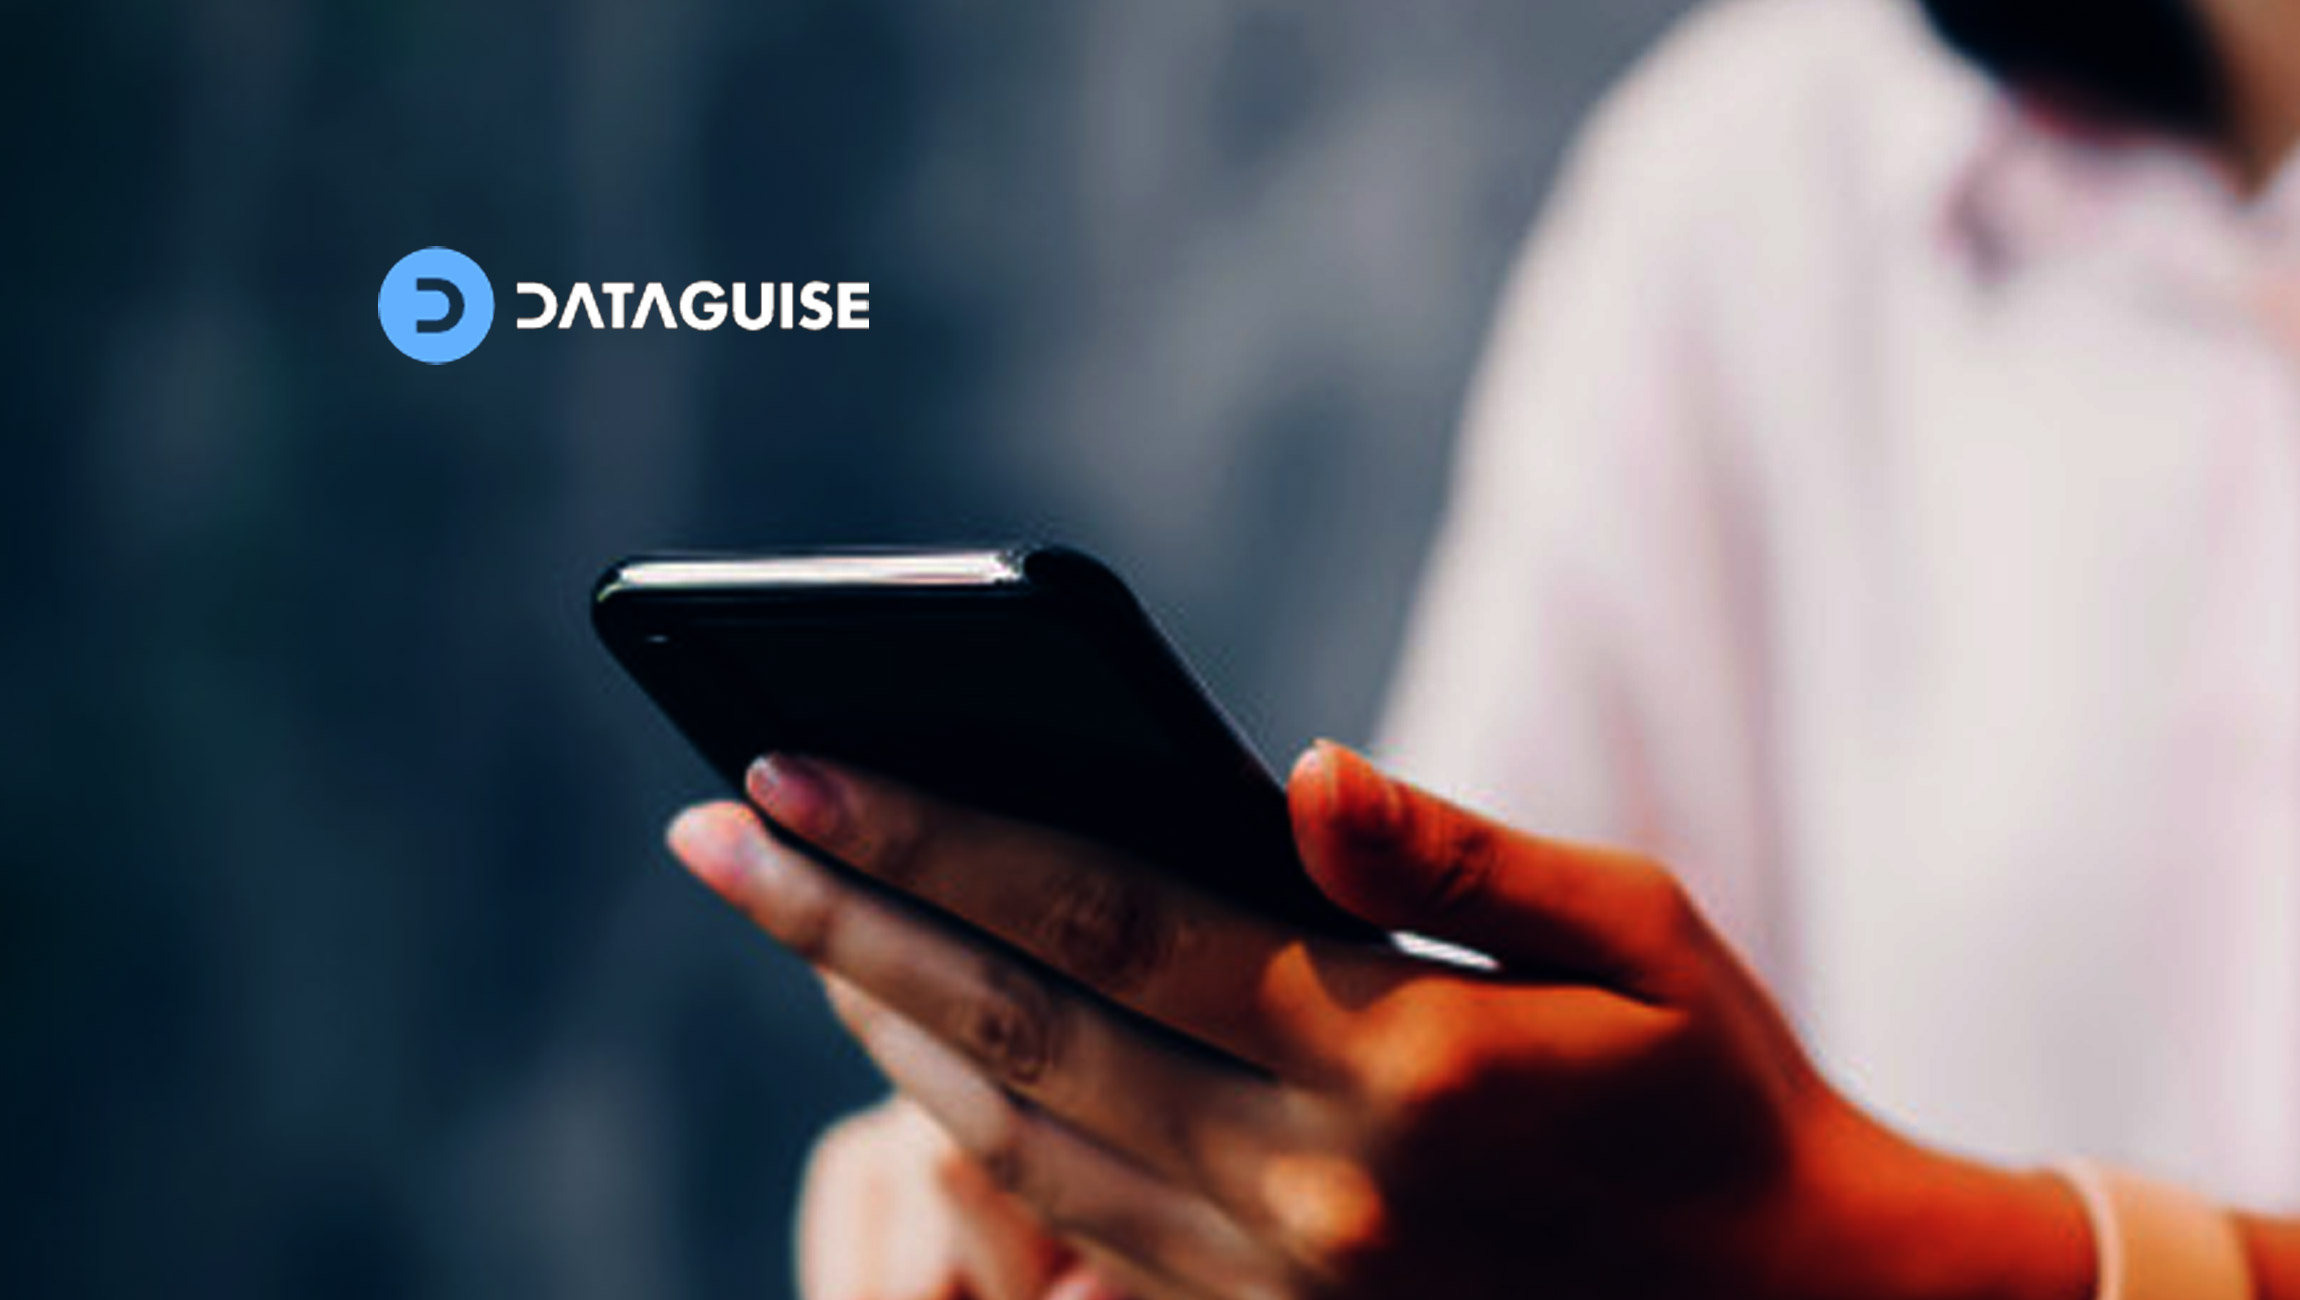 Dataguise Announces Integration with Microsoft Information Protection, Joins Microsoft Intelligent Security Association